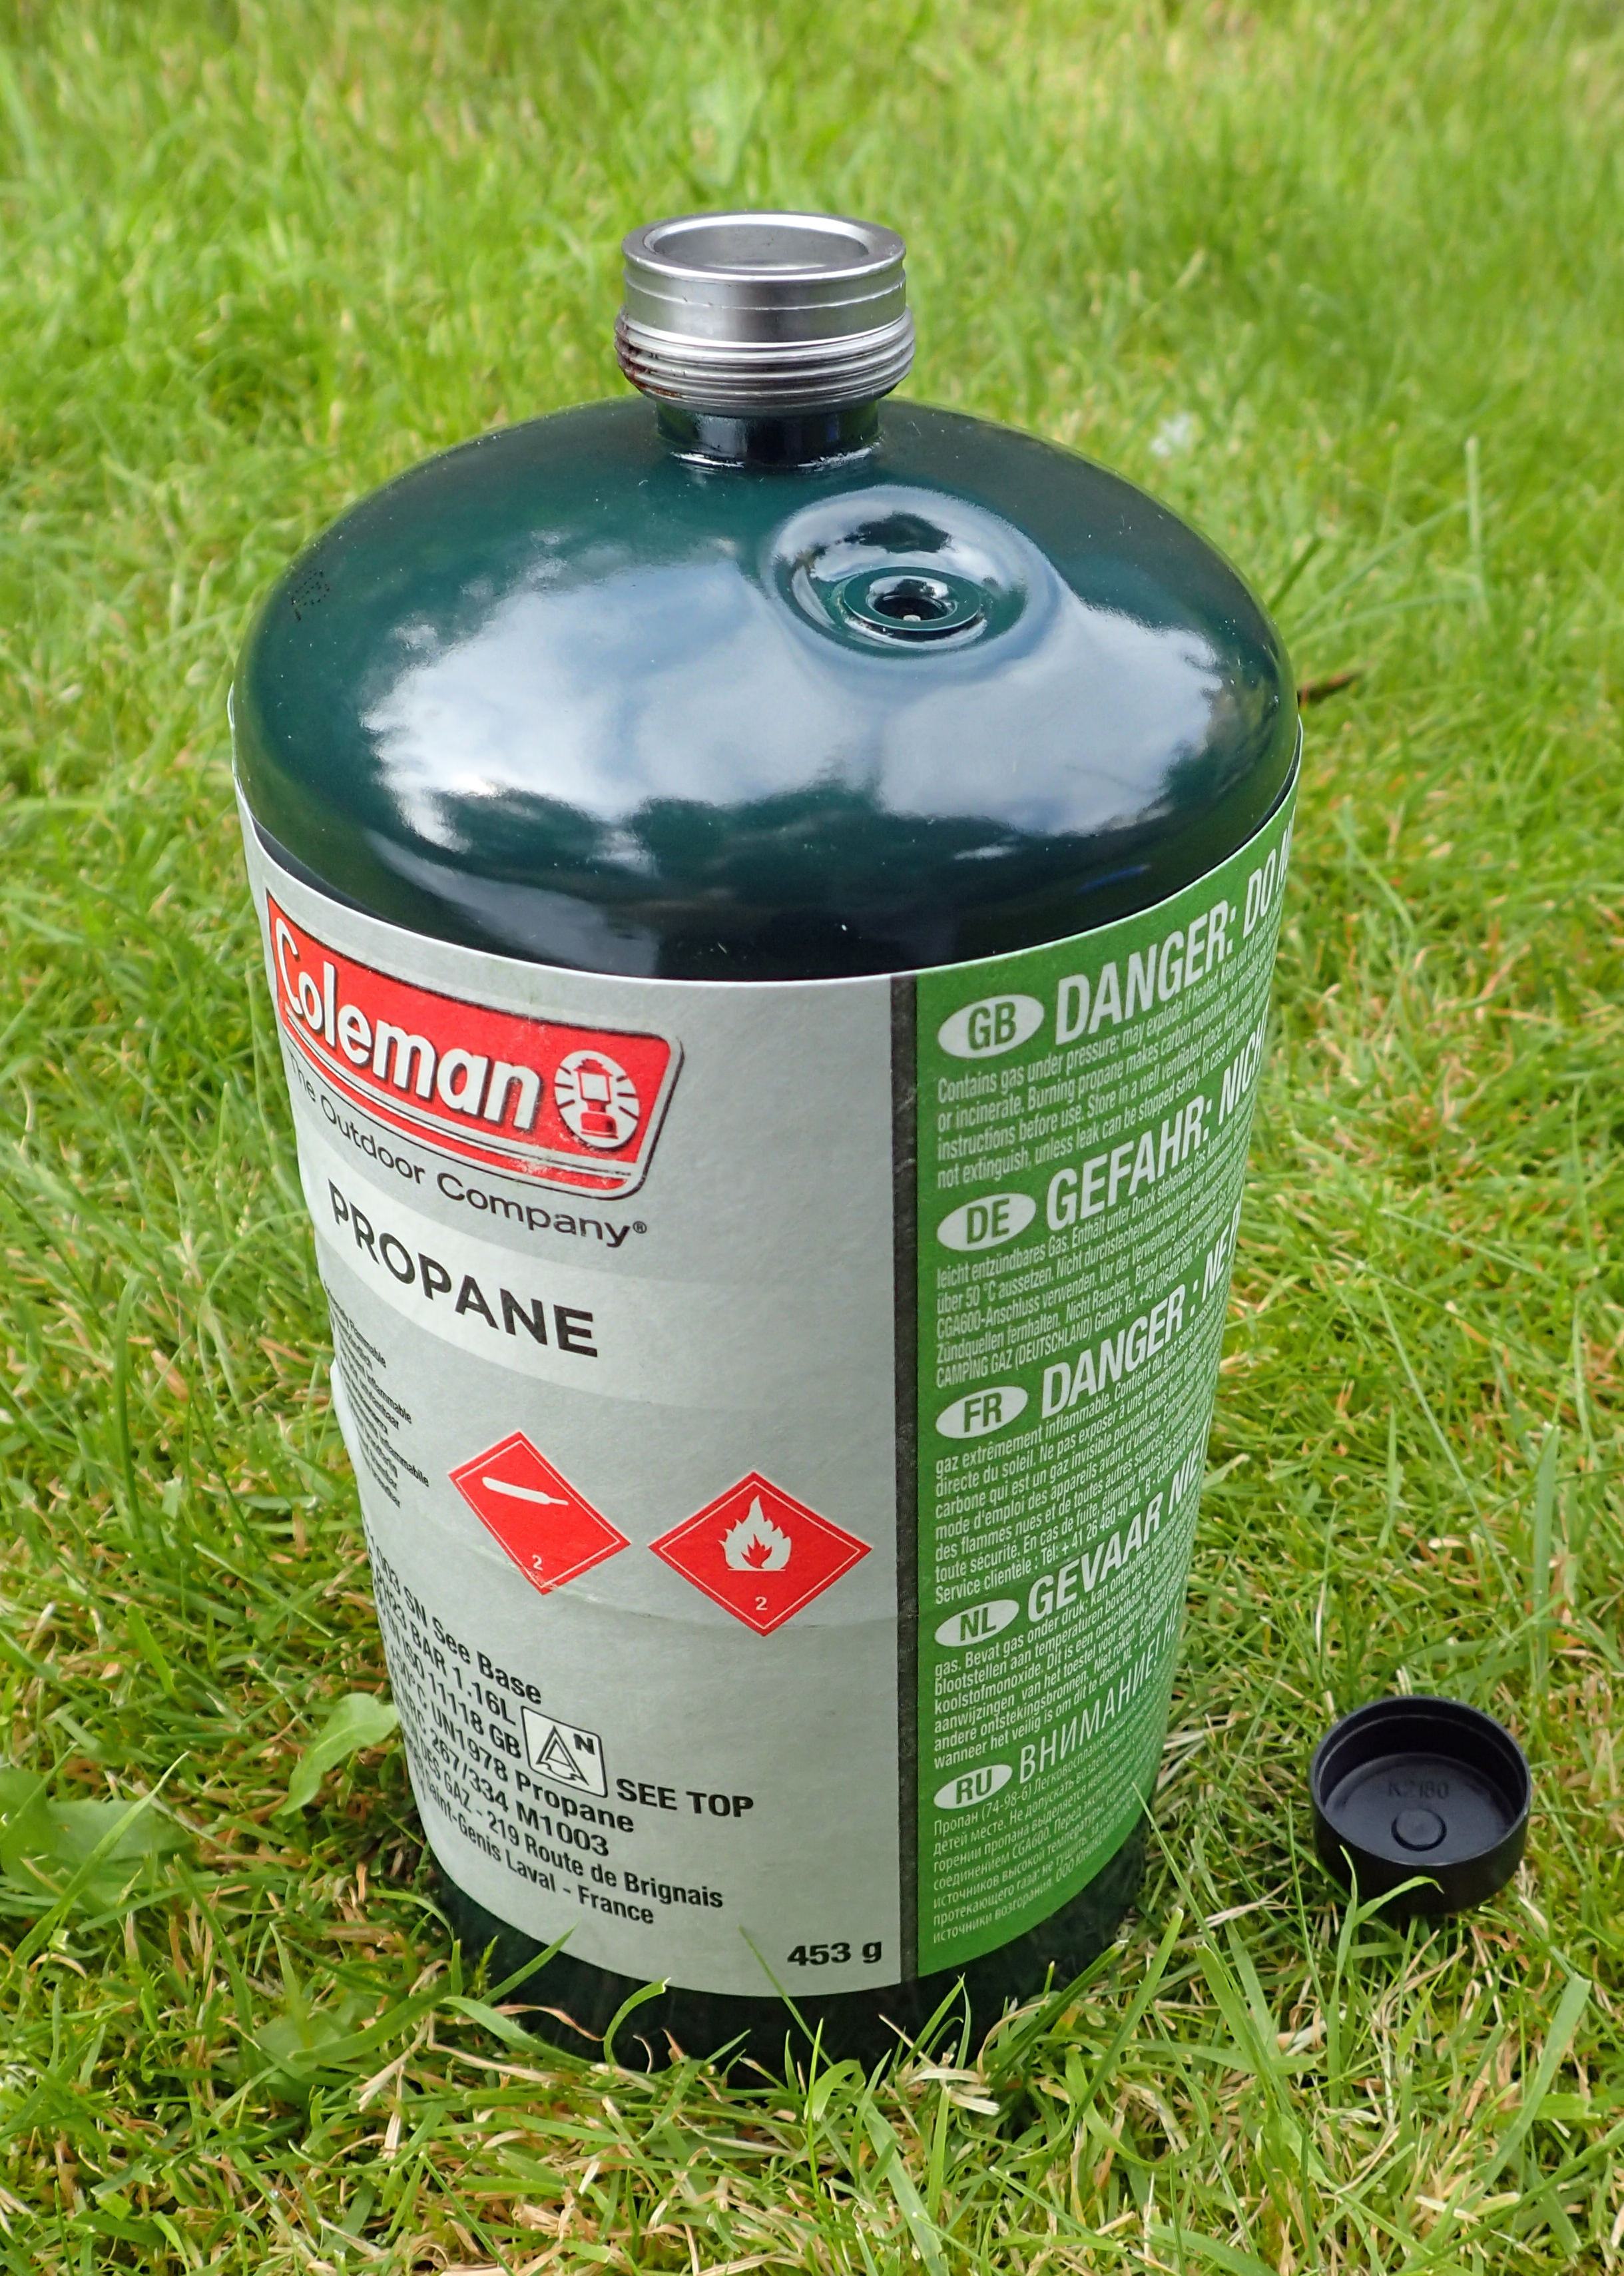 450g Propane canister